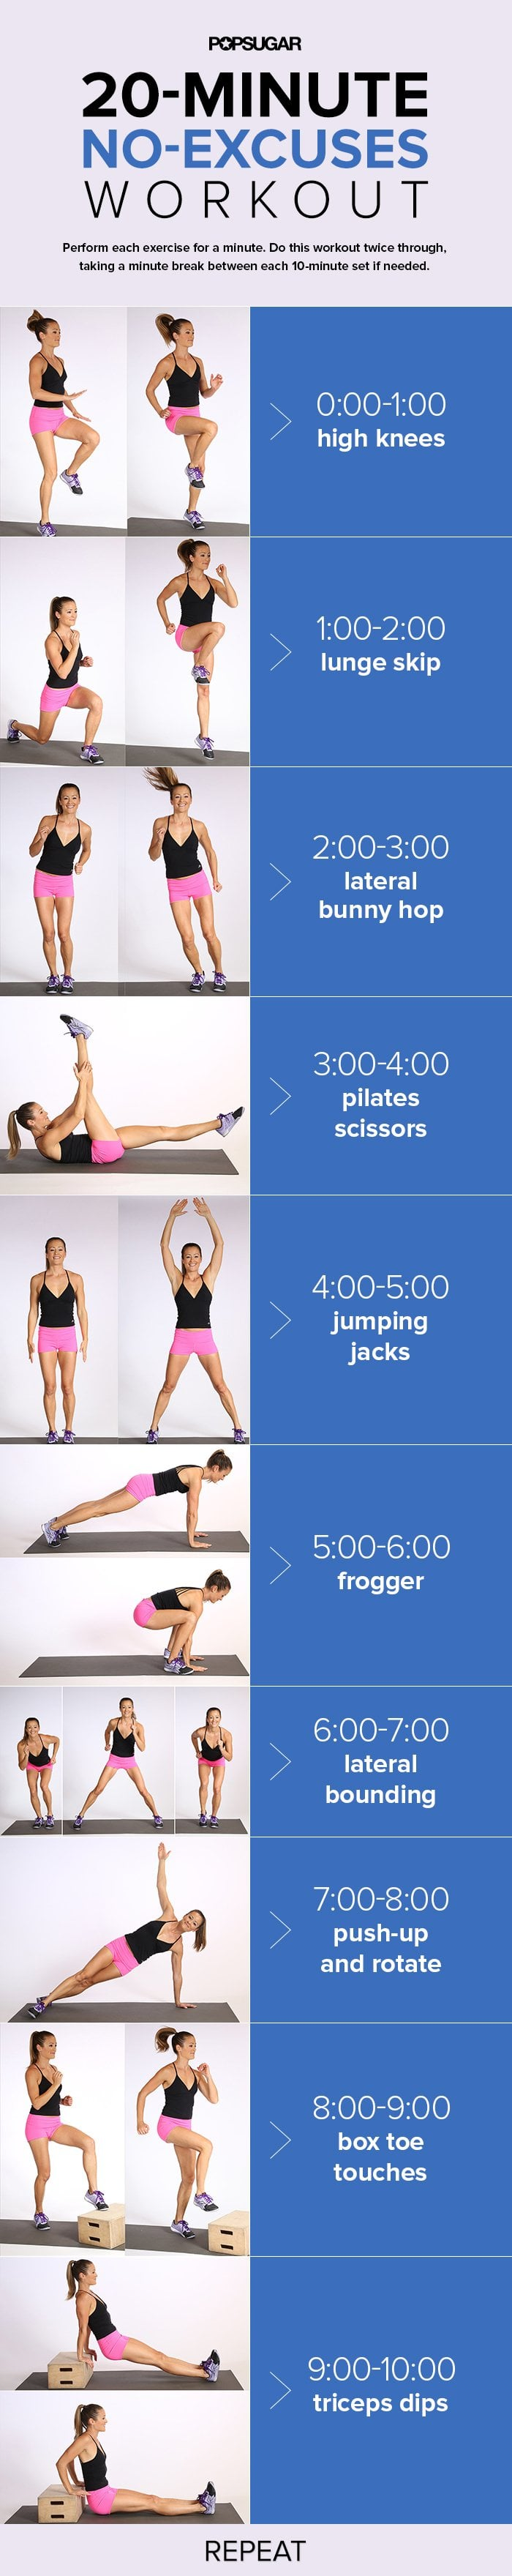 One-and-Done Workout | Printable Cardio Workouts ...